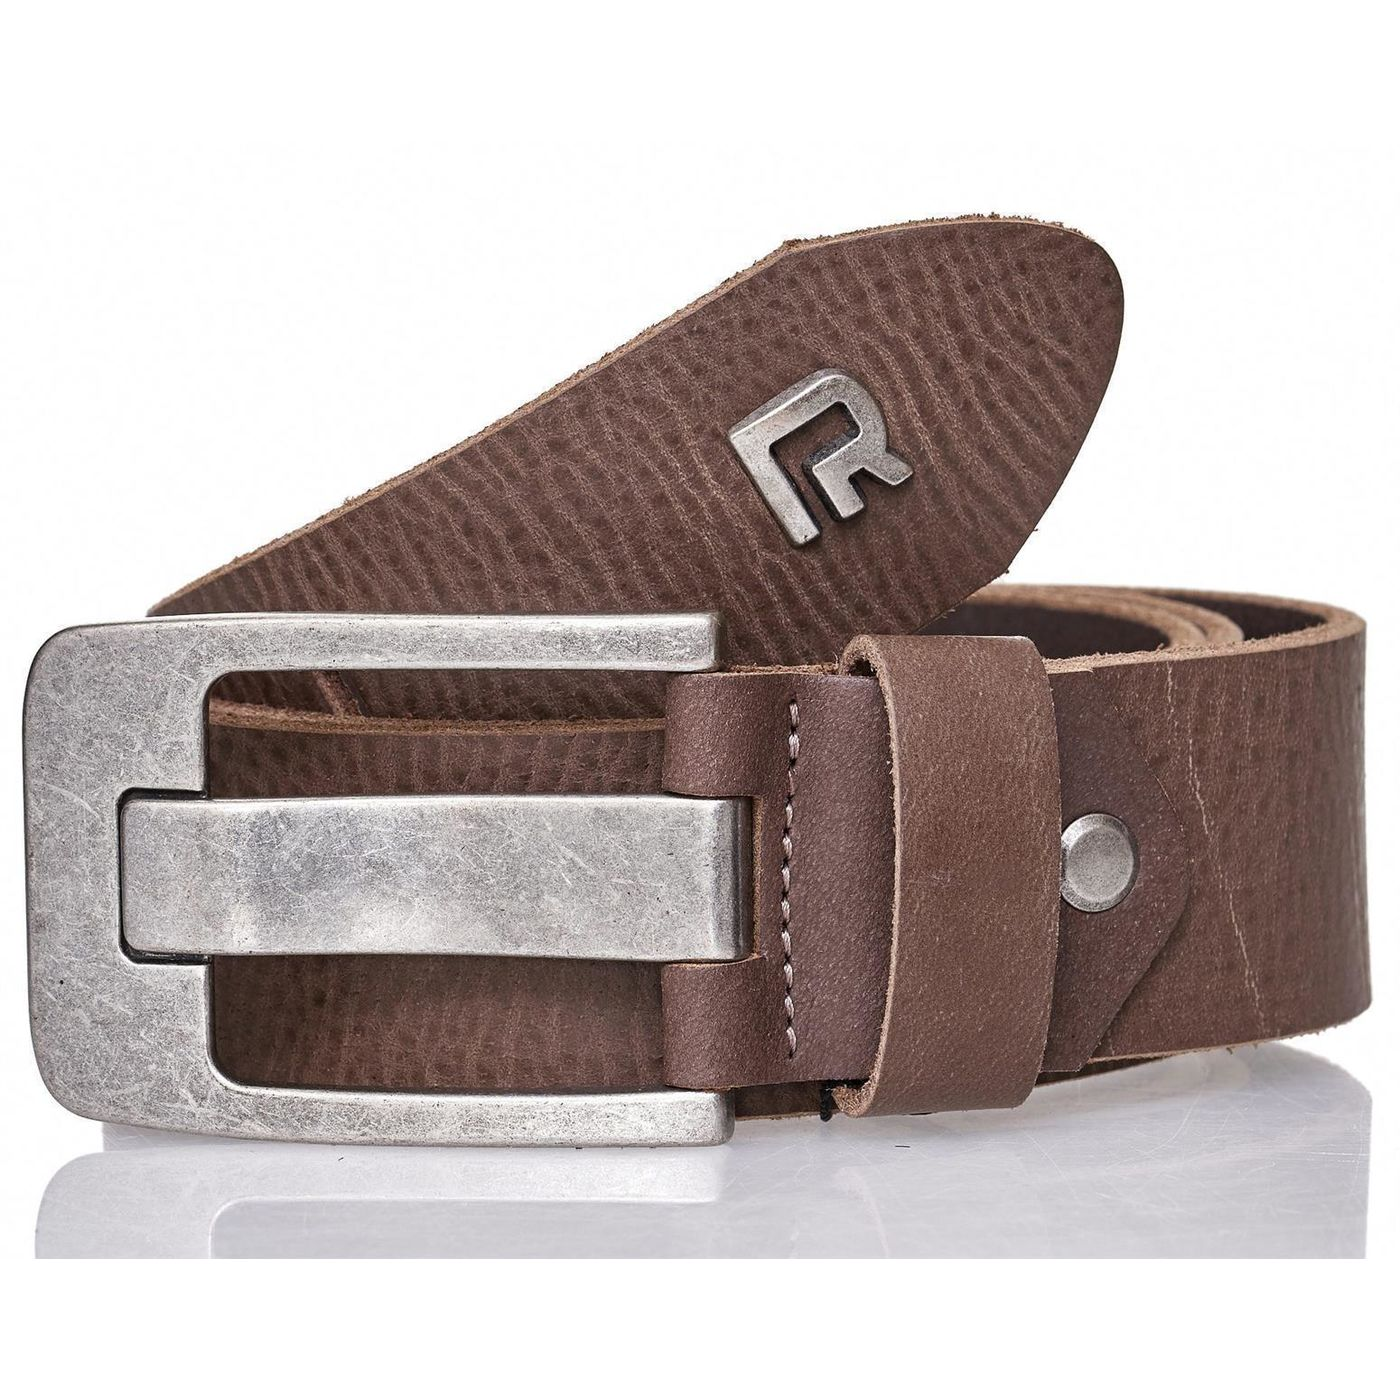 3861473cc259b9 Red Bridge Herren Gürtel Ledergürtel Echtleder Leather Belt RBC Premium Grau